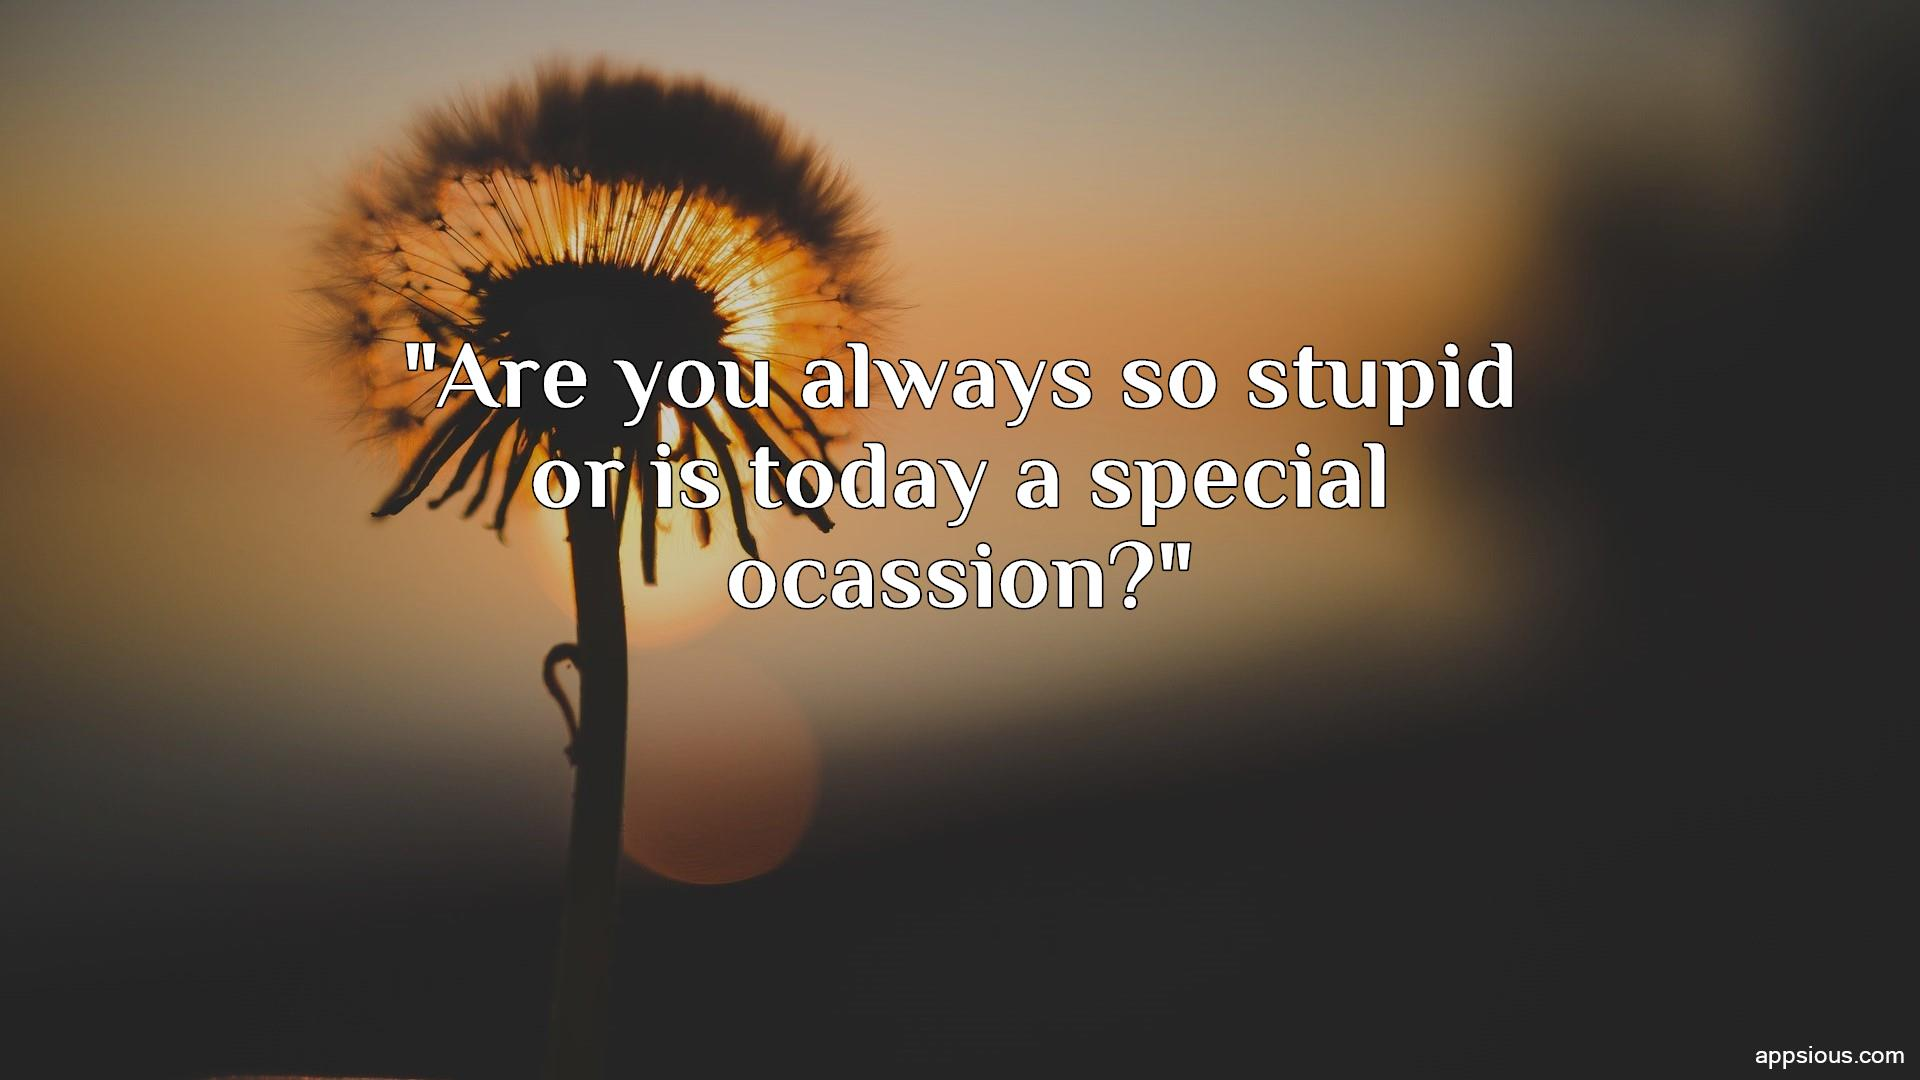 Are you always so stupid or is today a special ocassion?